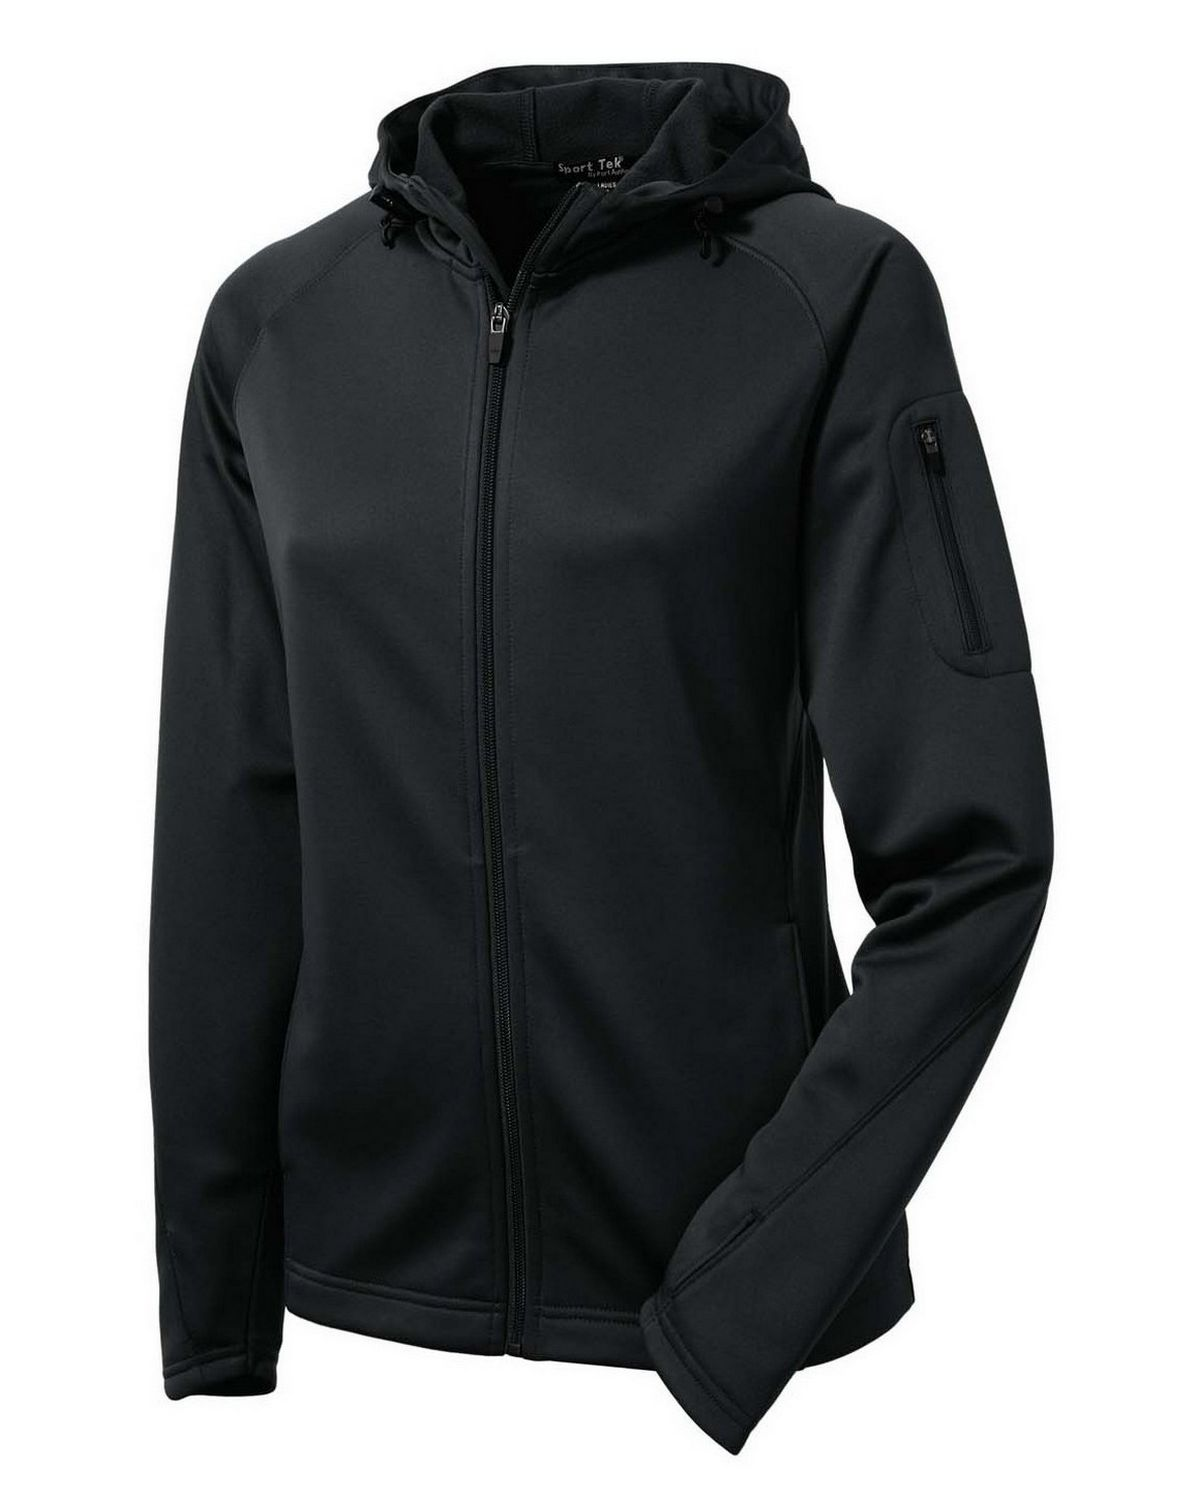 Sport Tek L248 Ladies Tech Fleece Full Zip Hooded Jacket A sport coat, also called a sport jacket (sports coat or sports jacket in american english), is a men's smart casual lounge jacket designed to be worn on its own without matching trousers, traditionally for sporting purposes. apparelnbags com